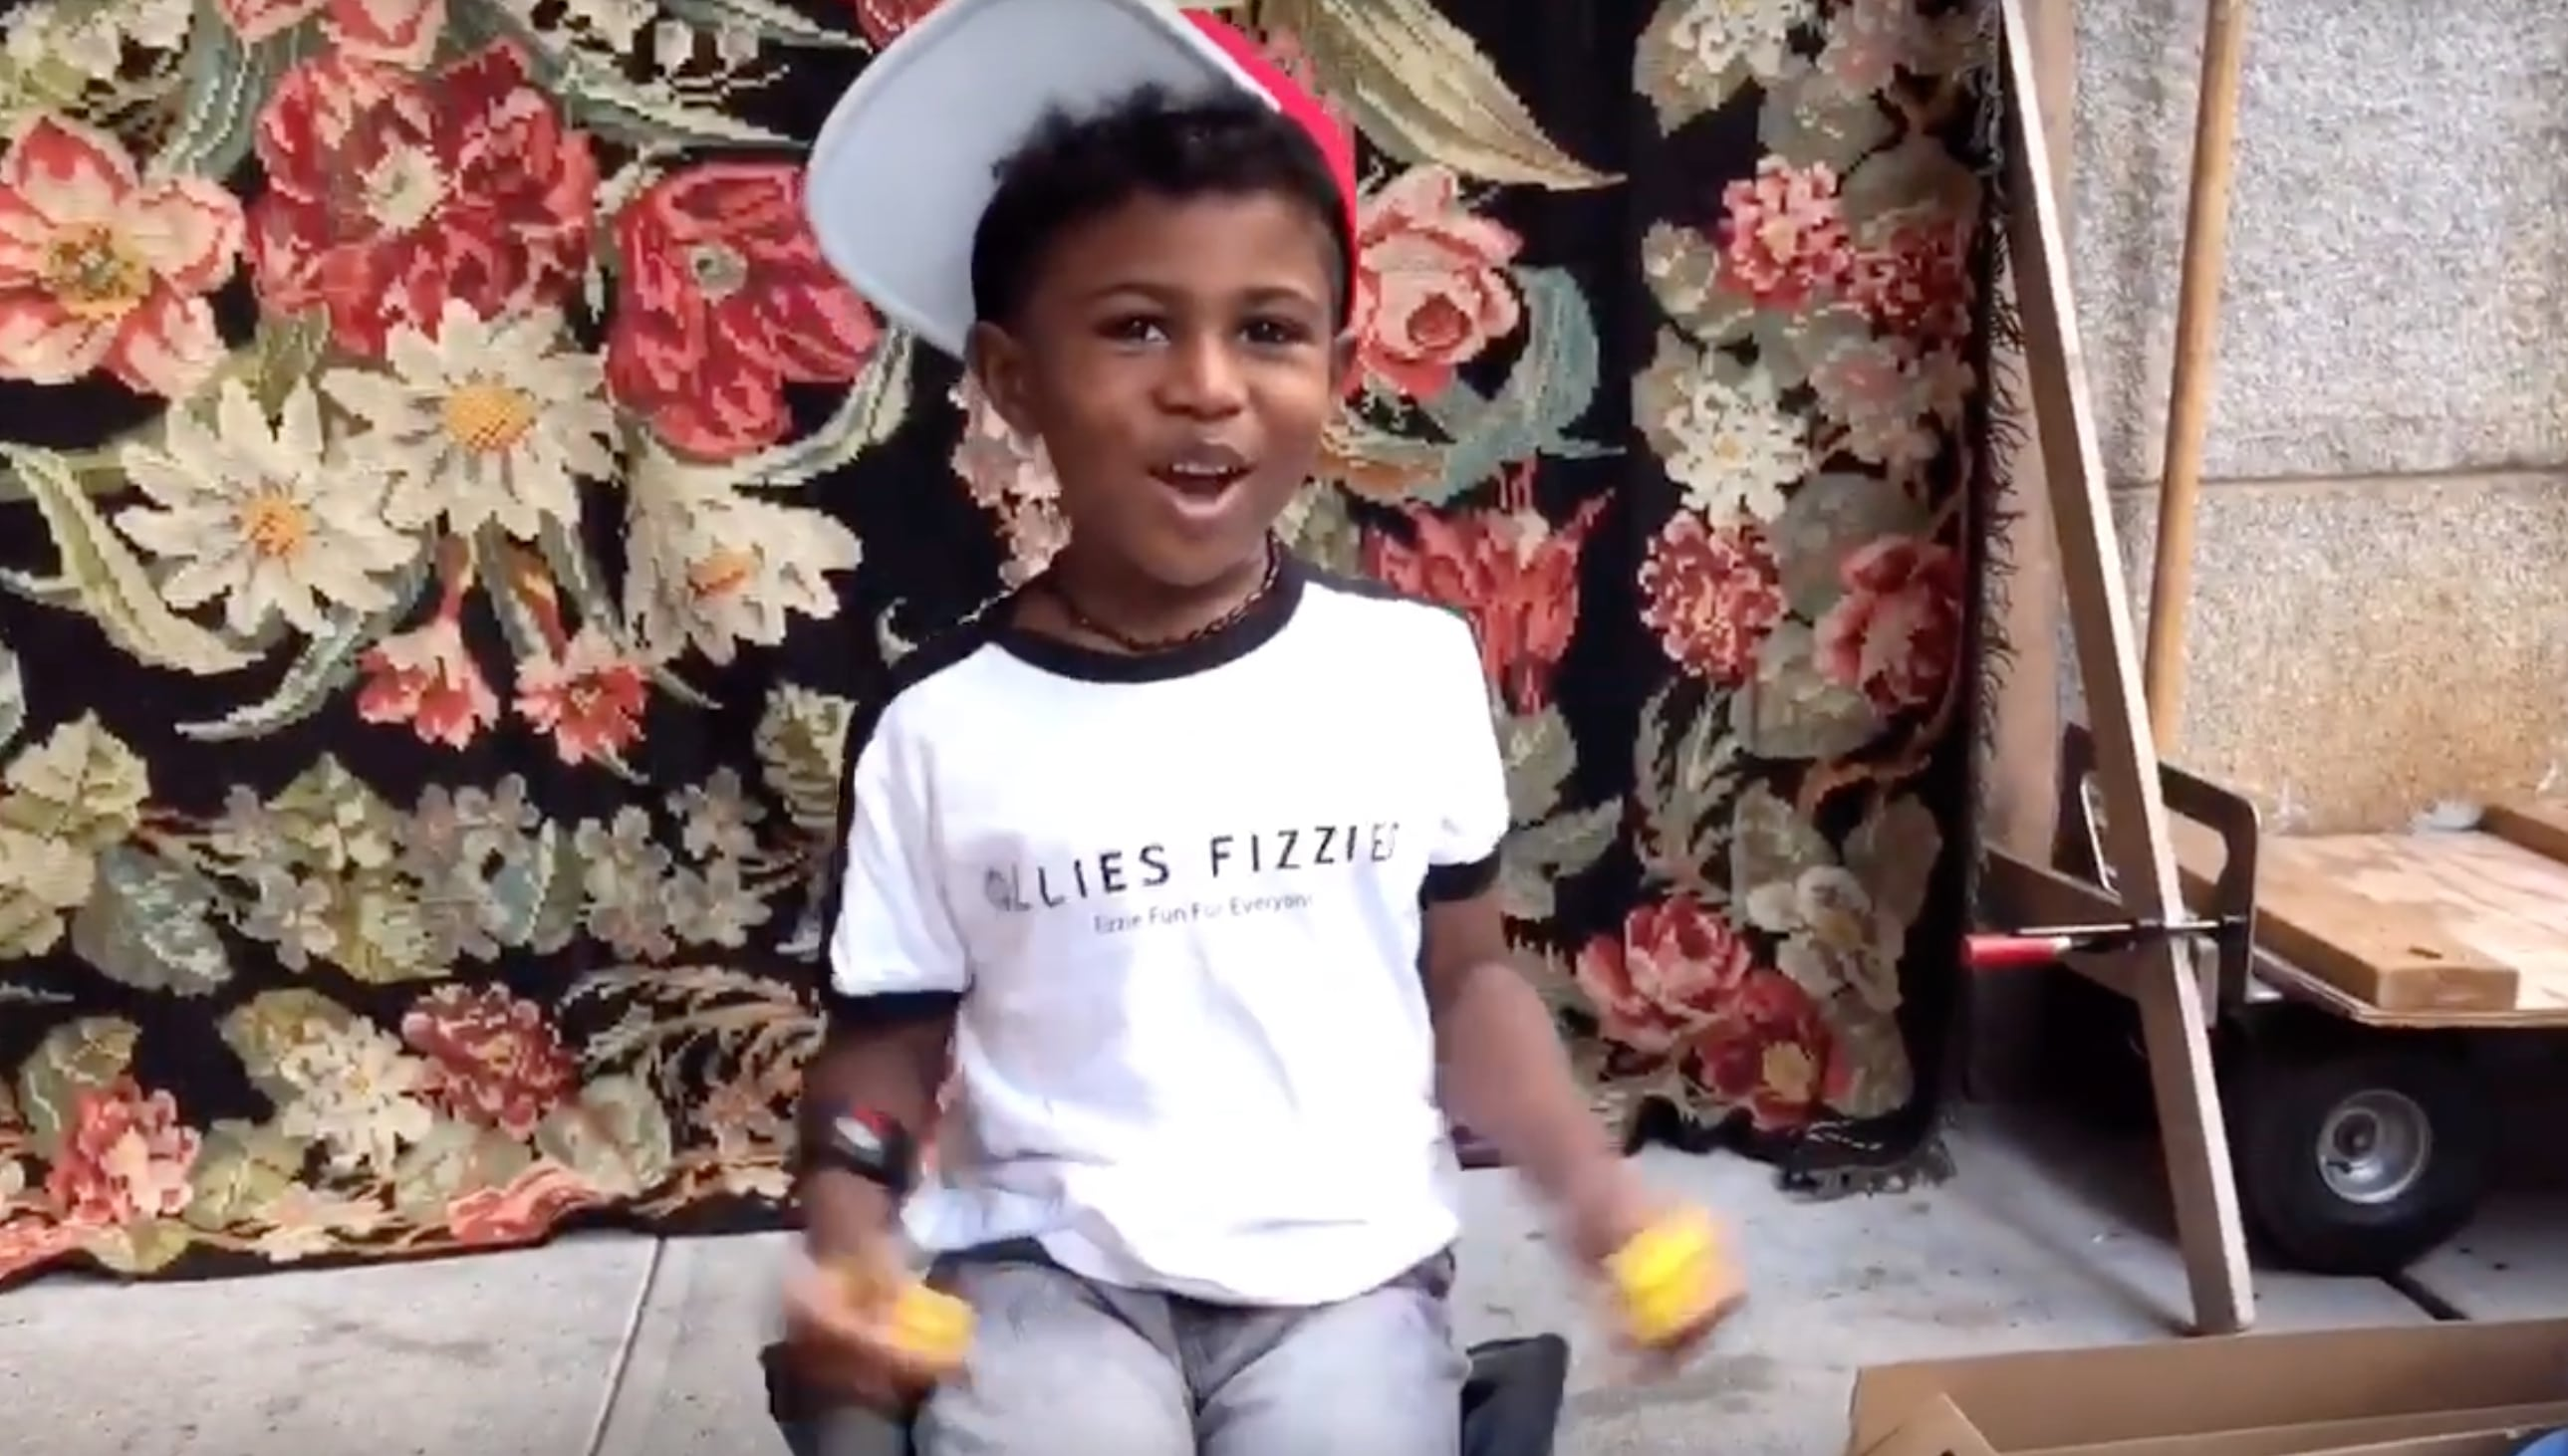 This New York City Kid Hasn't Even Started First Grade And He's Already Got His Own Business